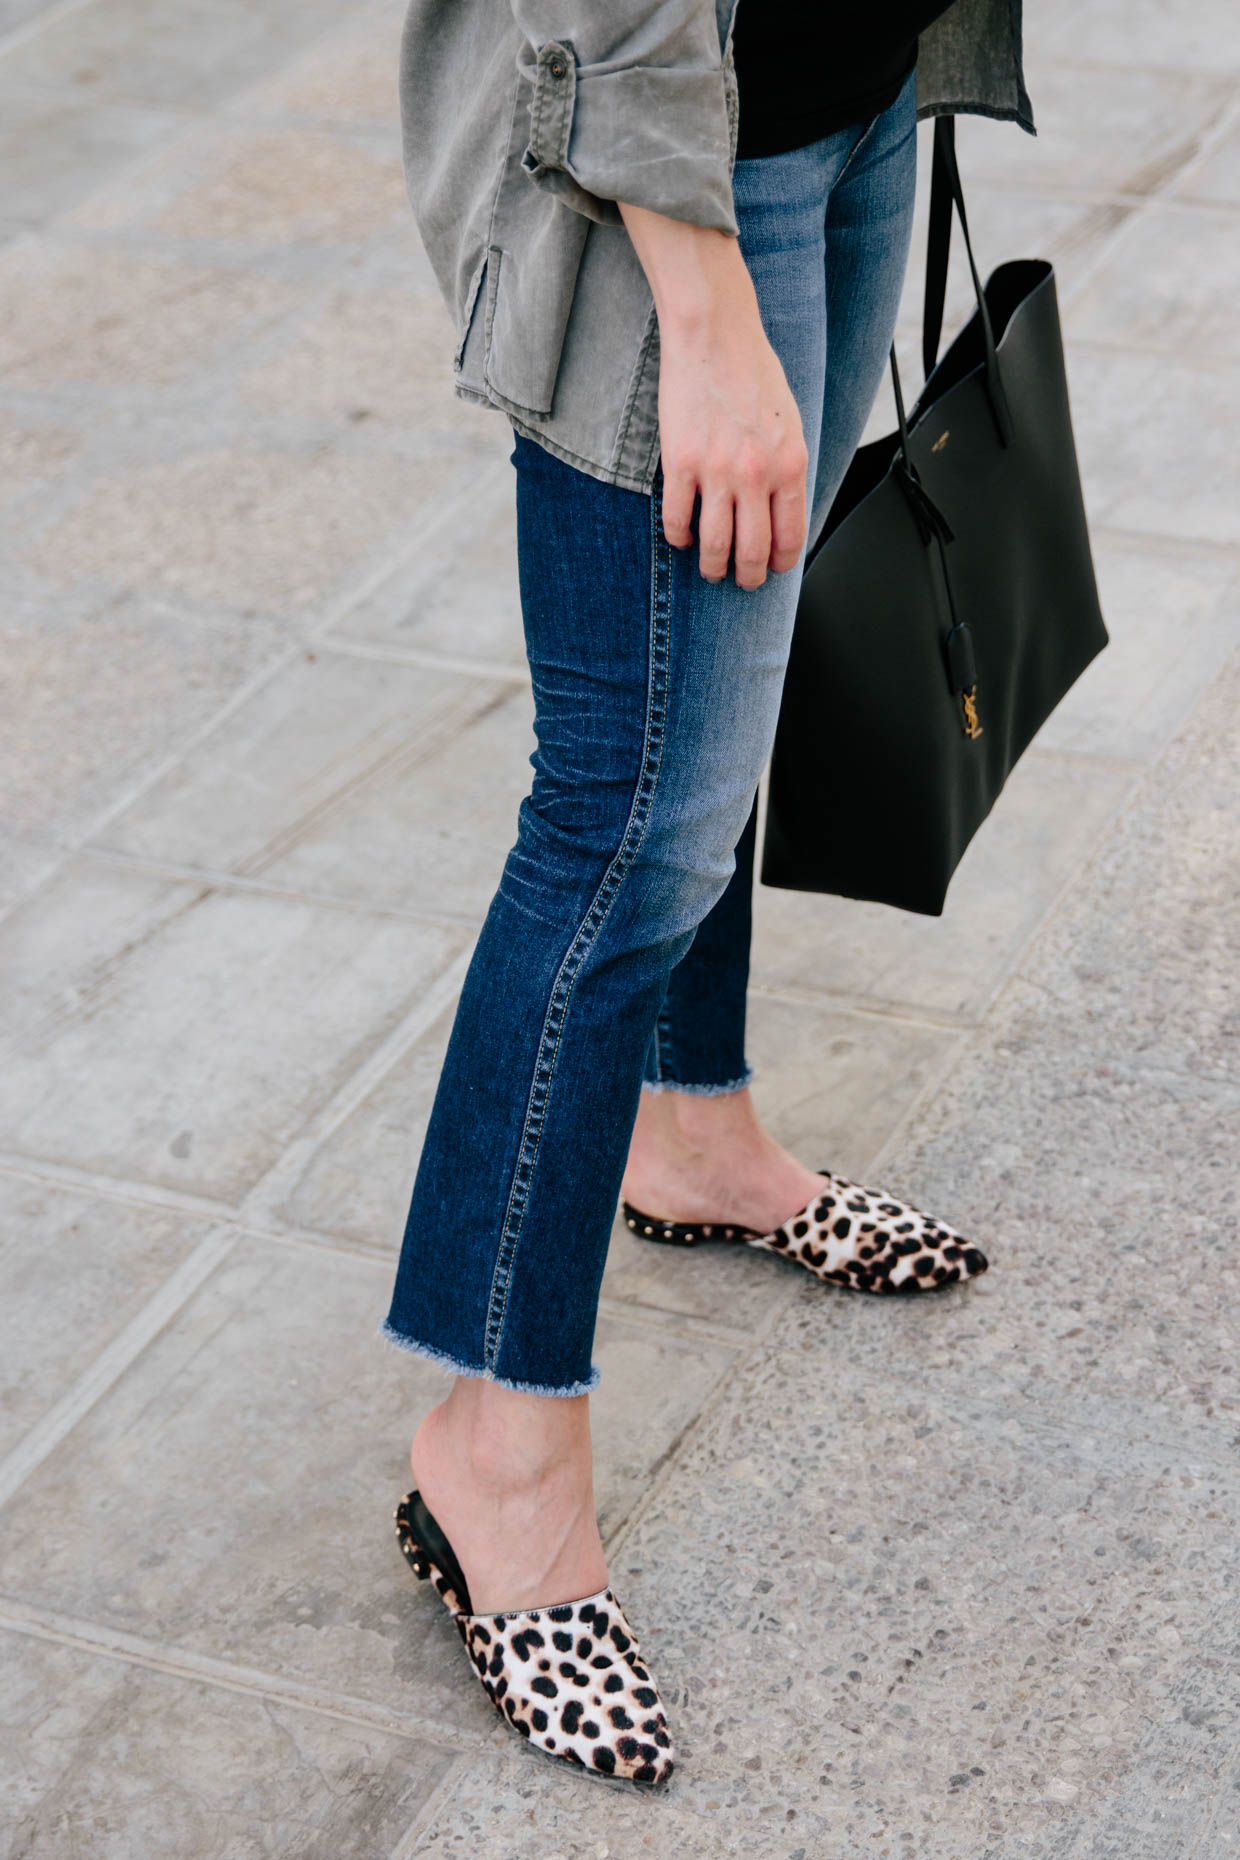 988d3da21e2b The best jeans to wear with pointy toe mule slides